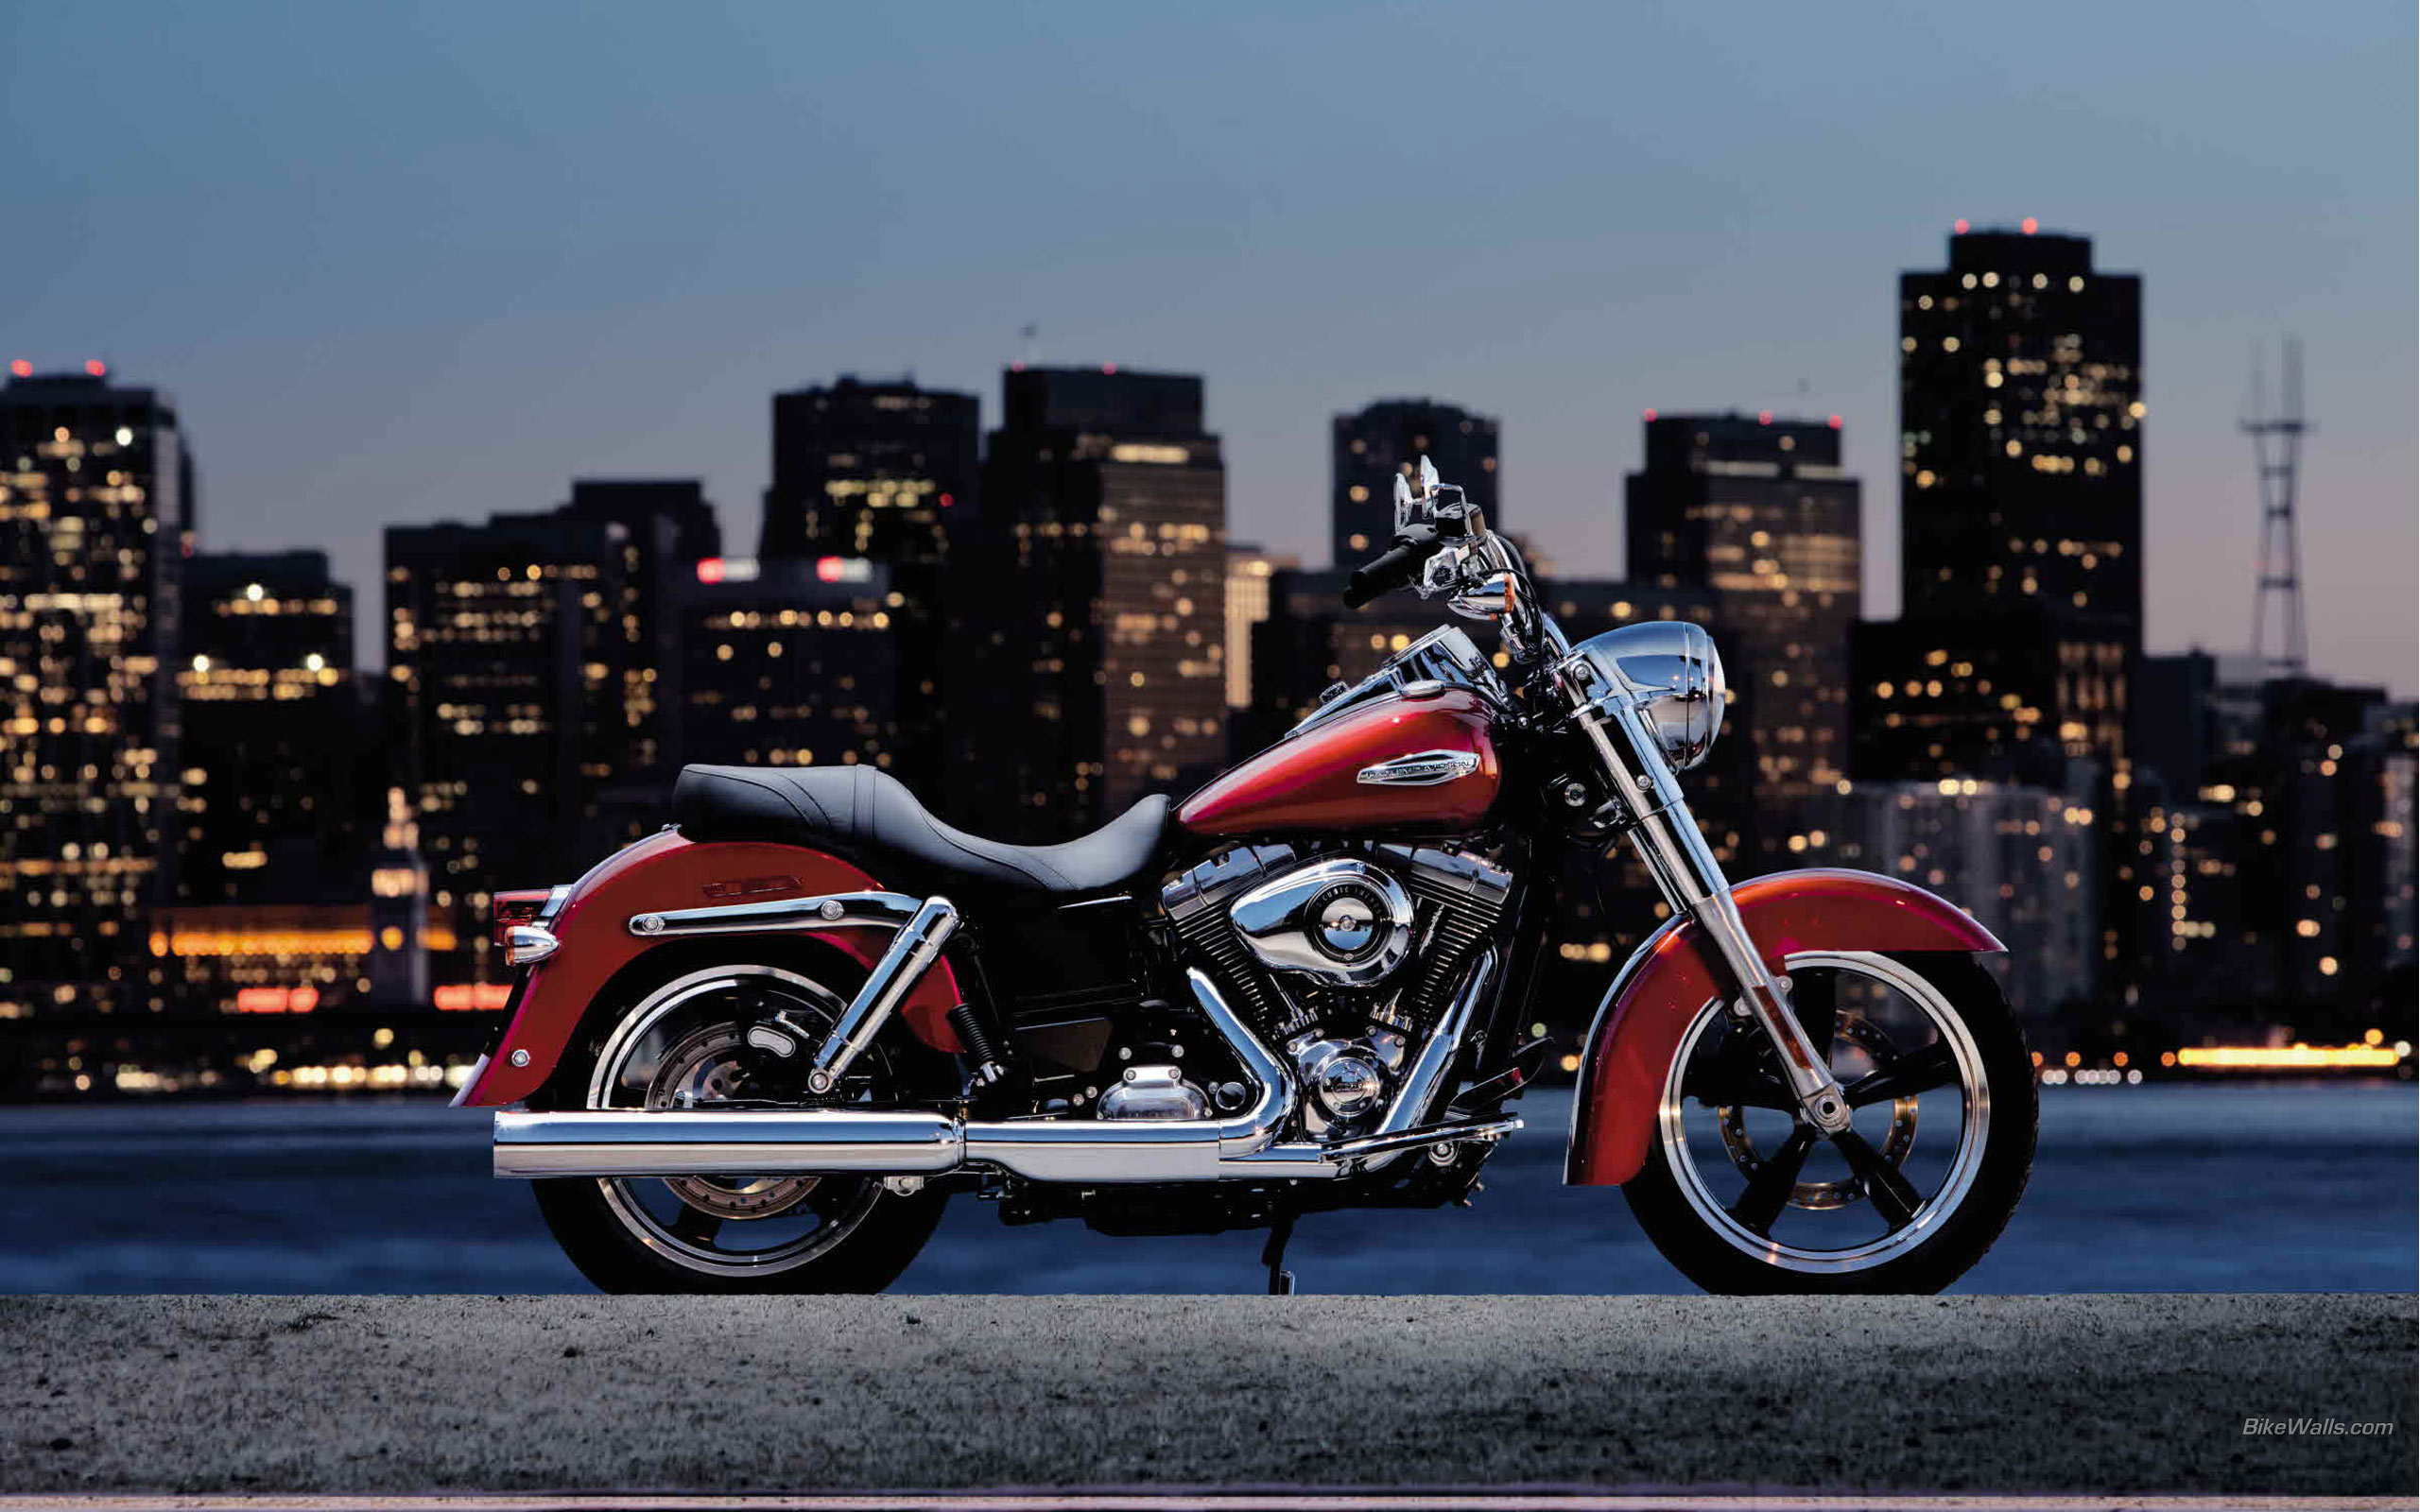 Harley-Davidson Switch Back 2560 x 1600 · 521 kB · jpeg